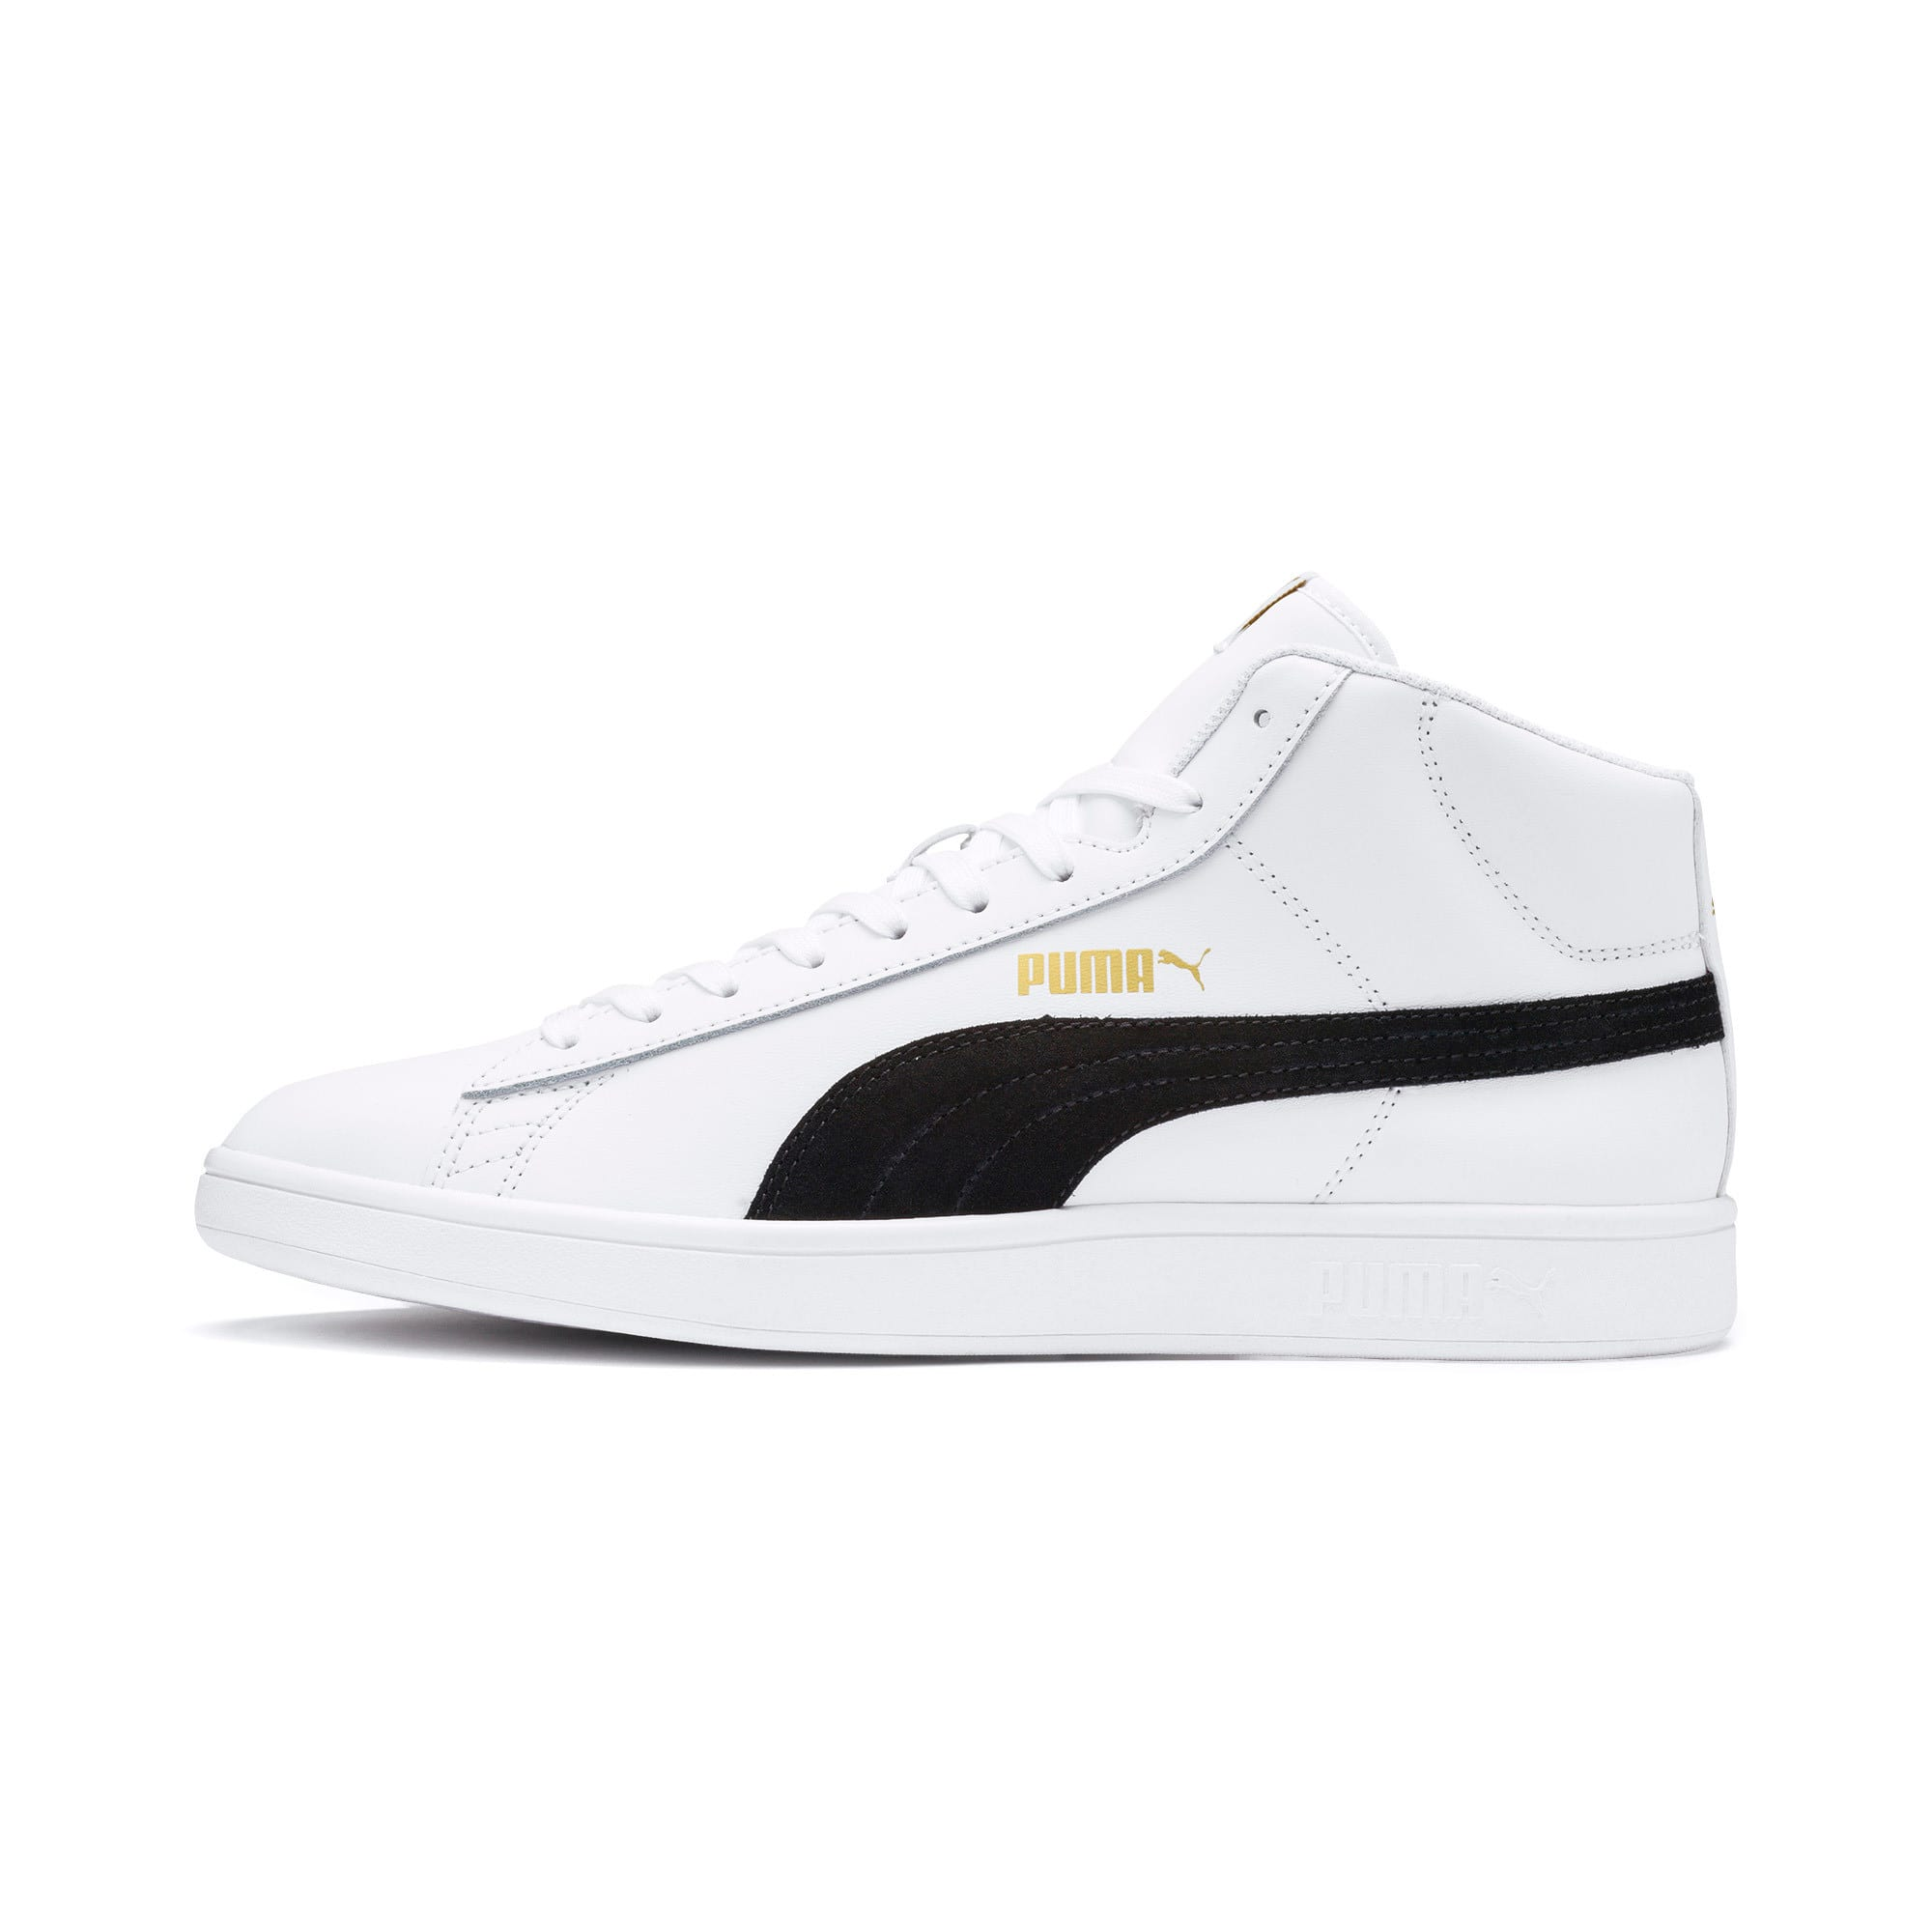 Thumbnail 1 of Smash v2 Mid-Cut Trainers, White-Black-Gold-High Rise, medium-IND